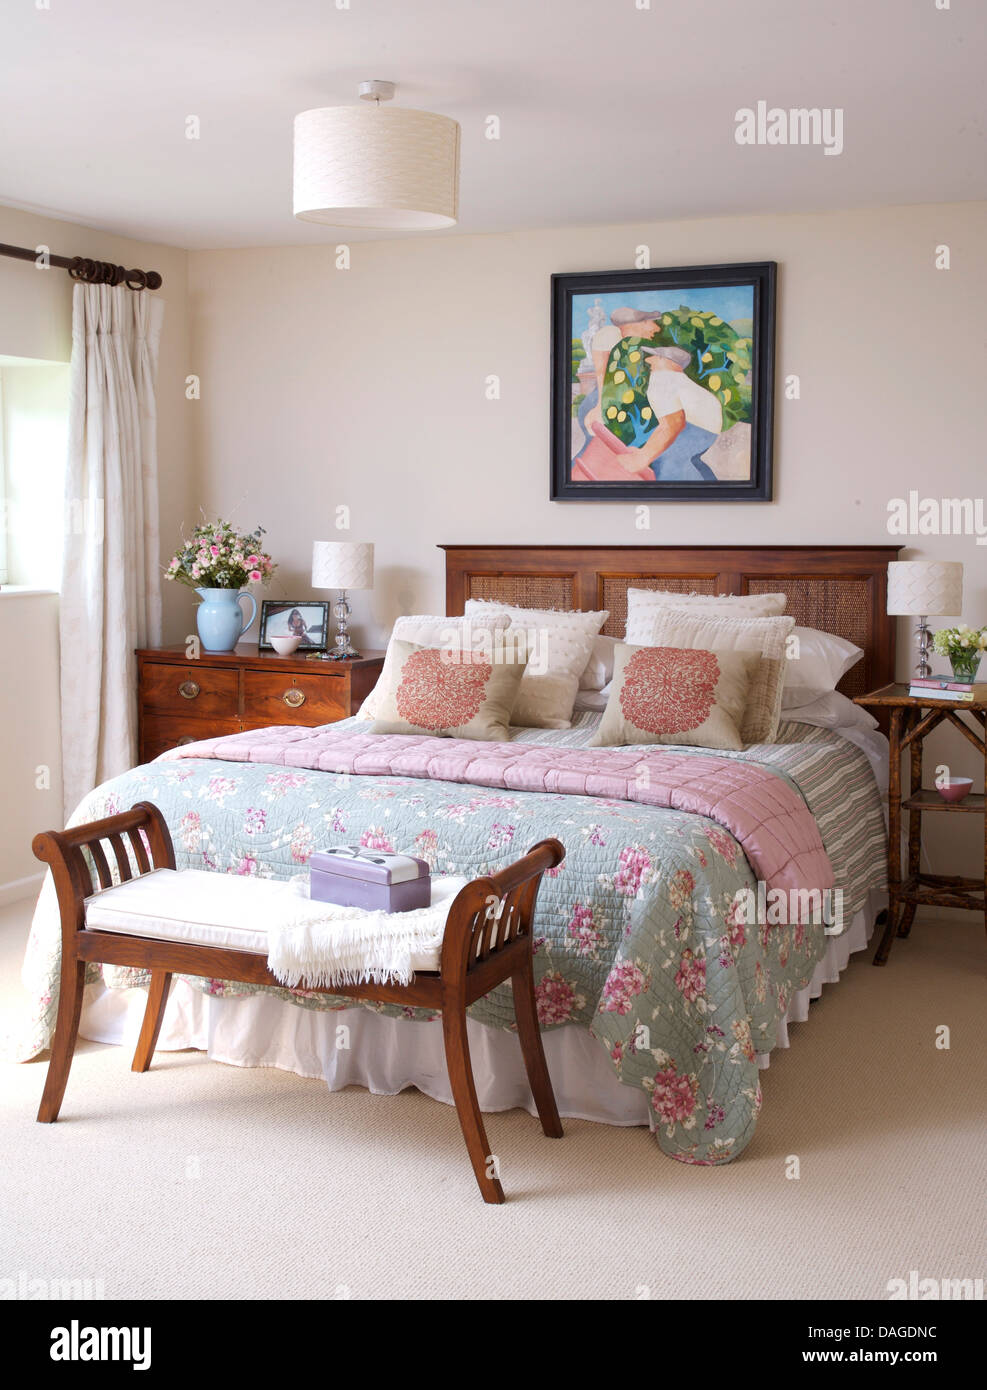 Wooden bench seat at foot of double bed with wooden headboard and stock photo royalty free - Seat at foot of bed ...